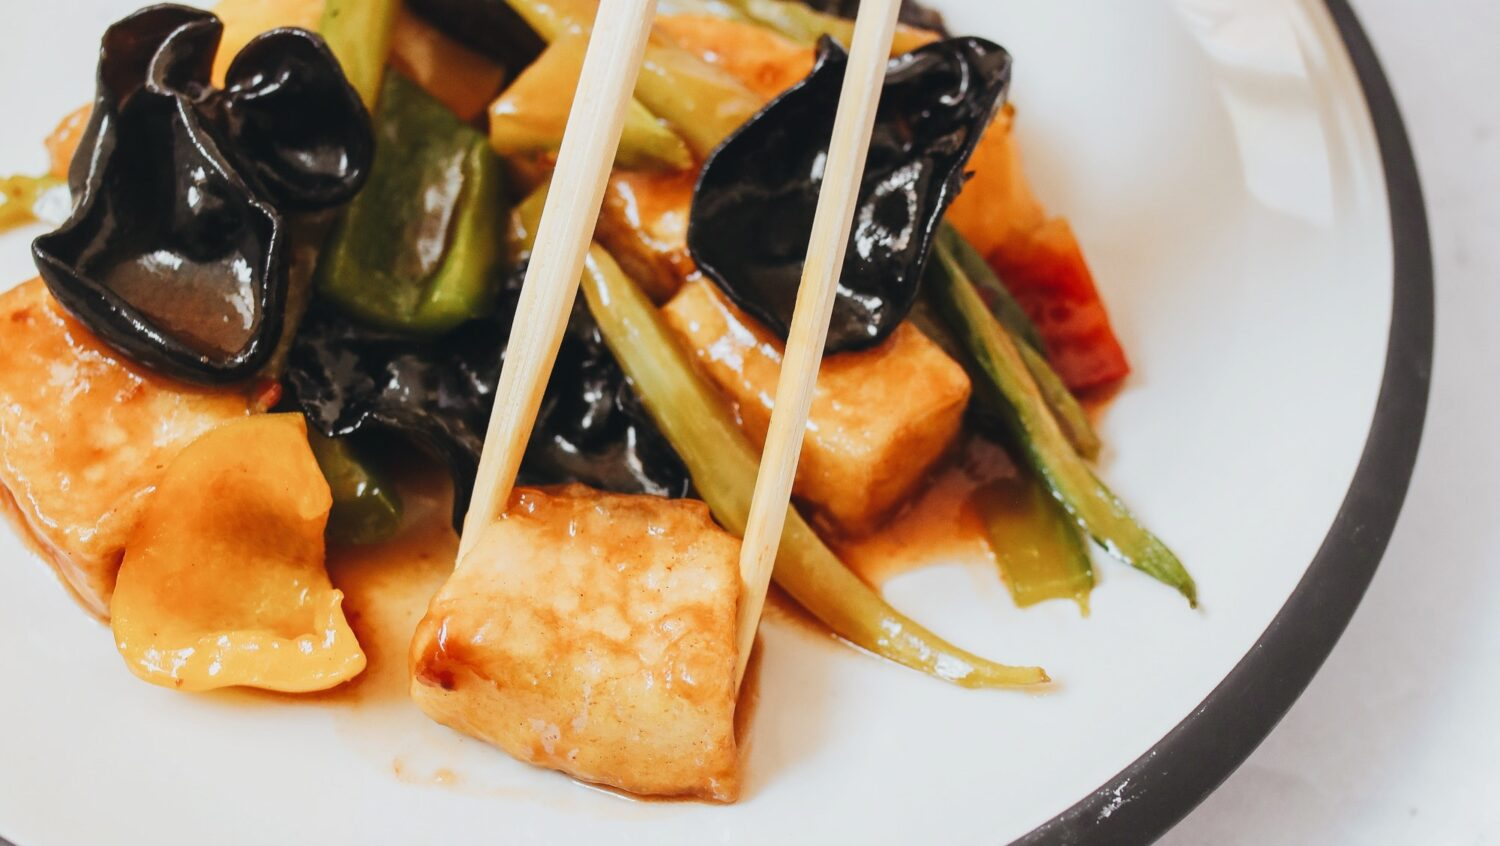 This Soy-Free Tofu Is Packed With Protein From Peas